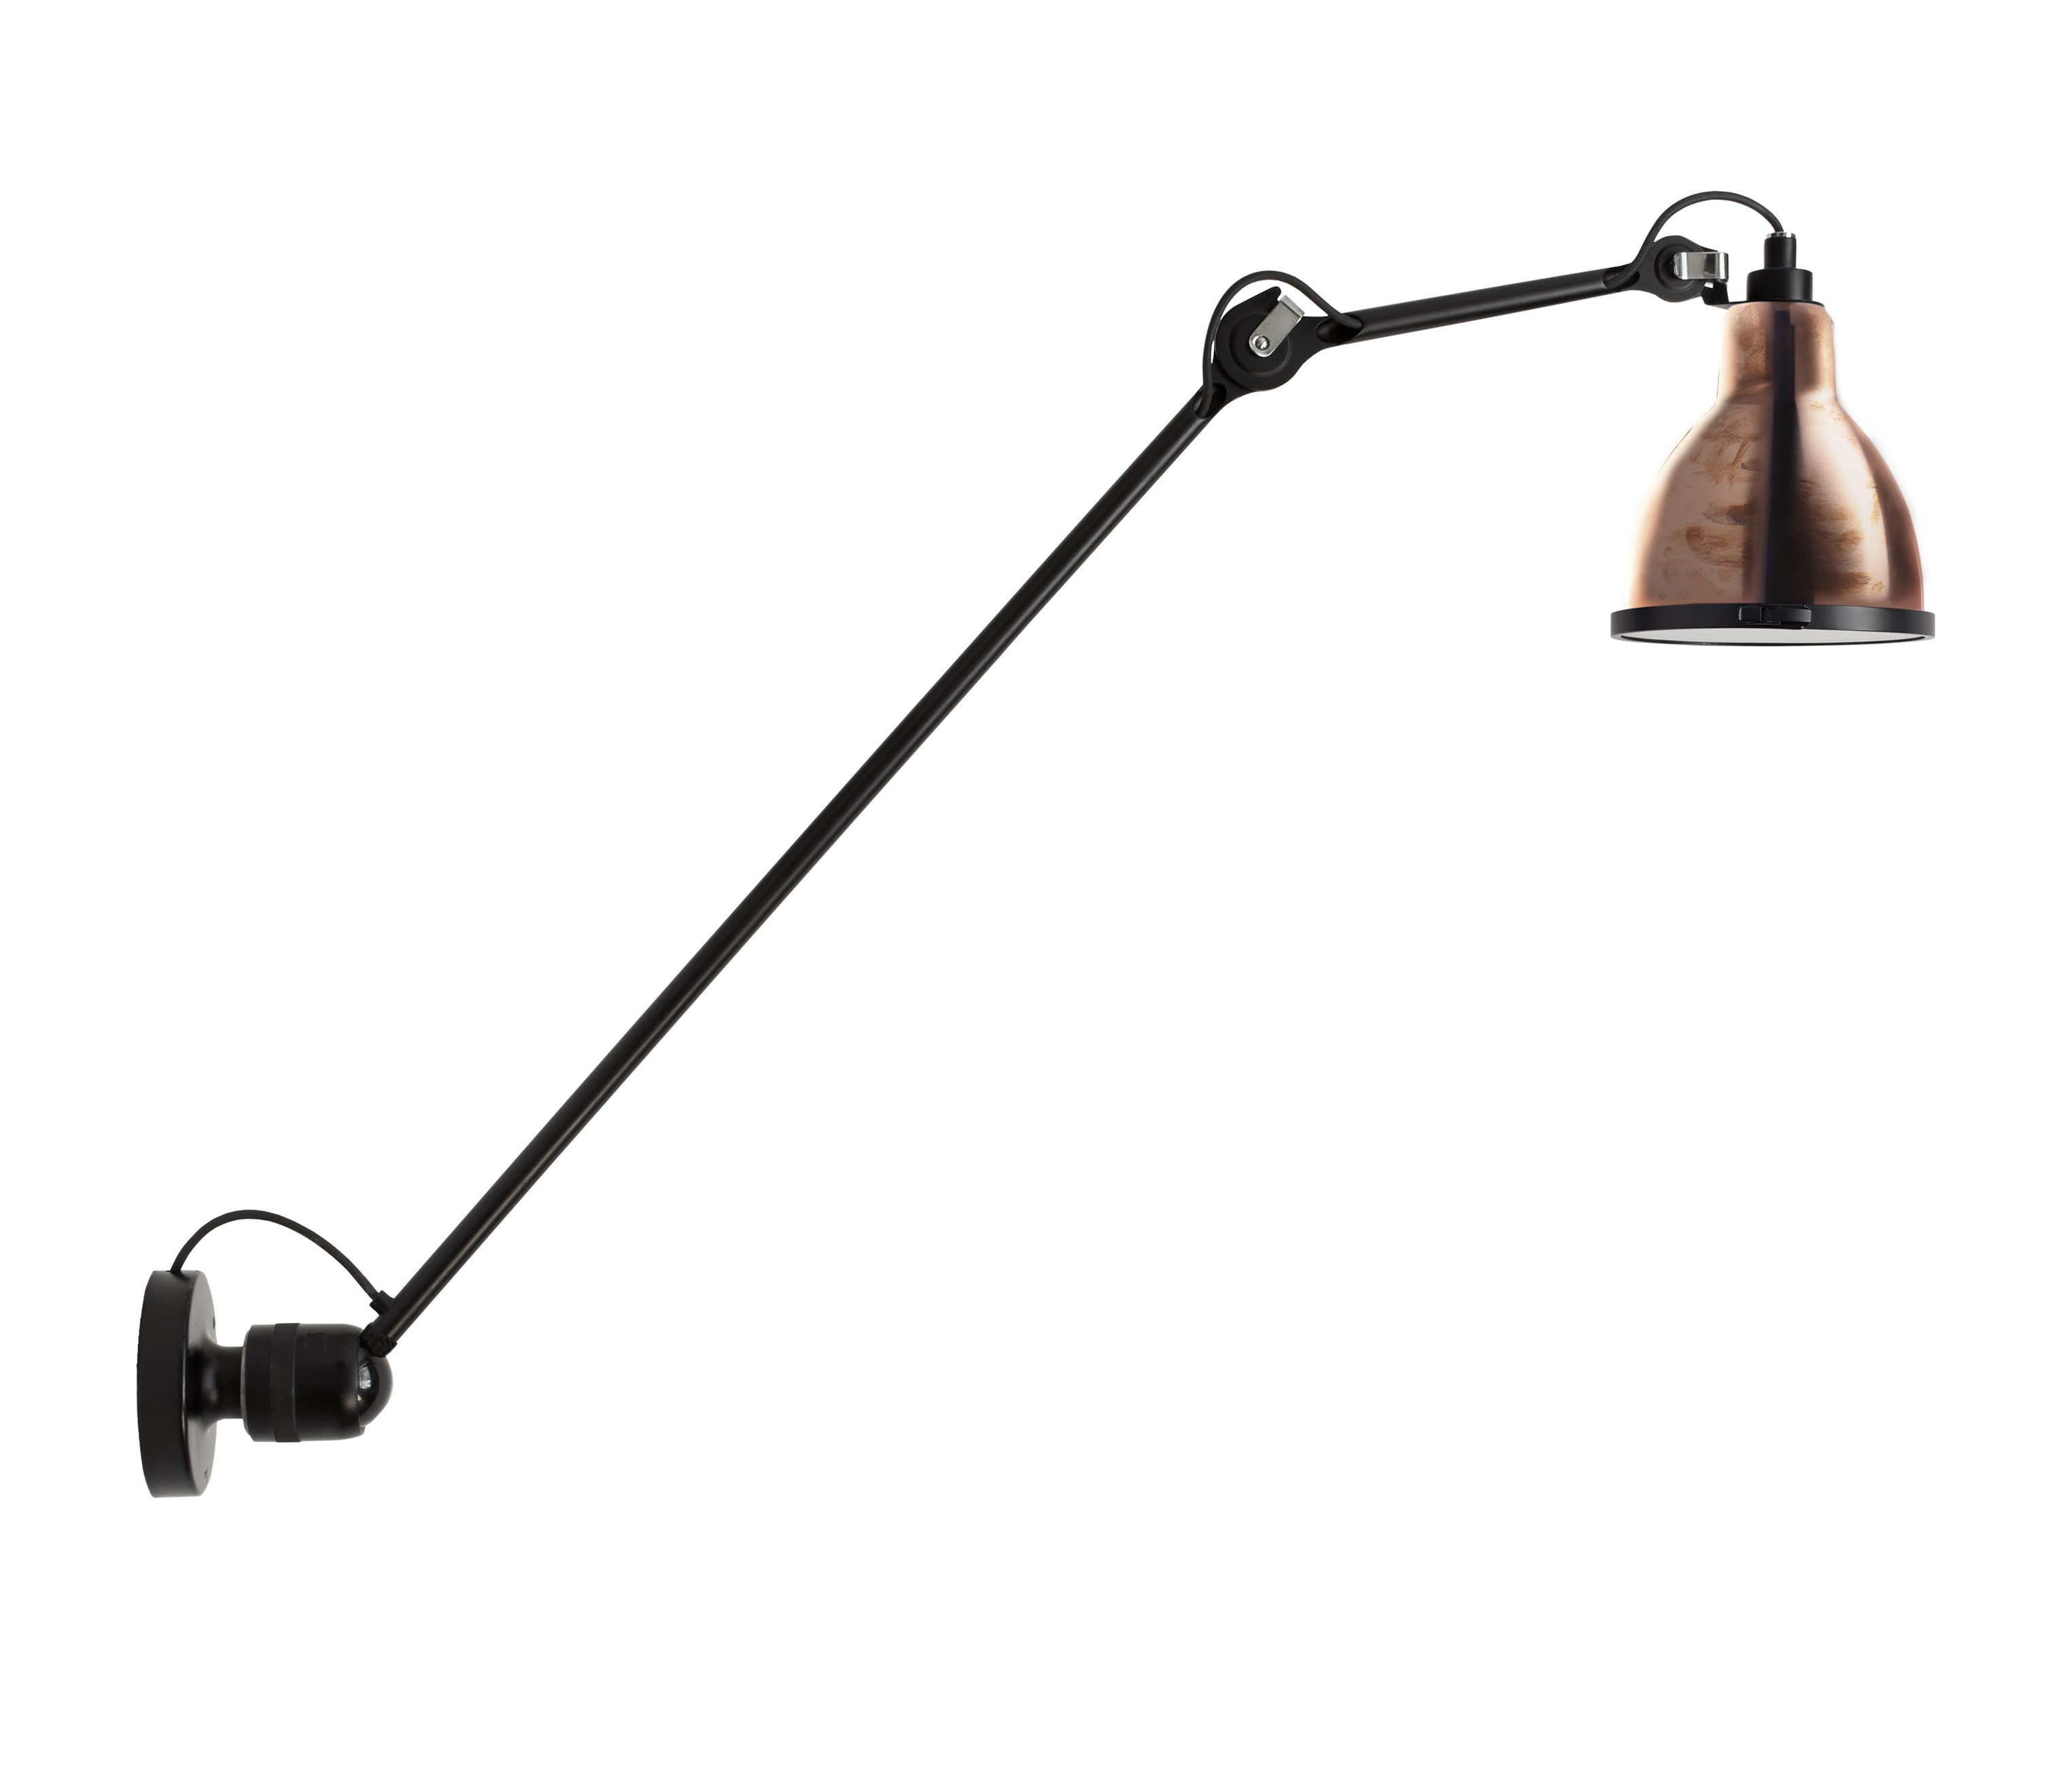 adjustable steel wall lamp 304 xl 90 in and out by dcw ditions design bernard albin gras. Black Bedroom Furniture Sets. Home Design Ideas